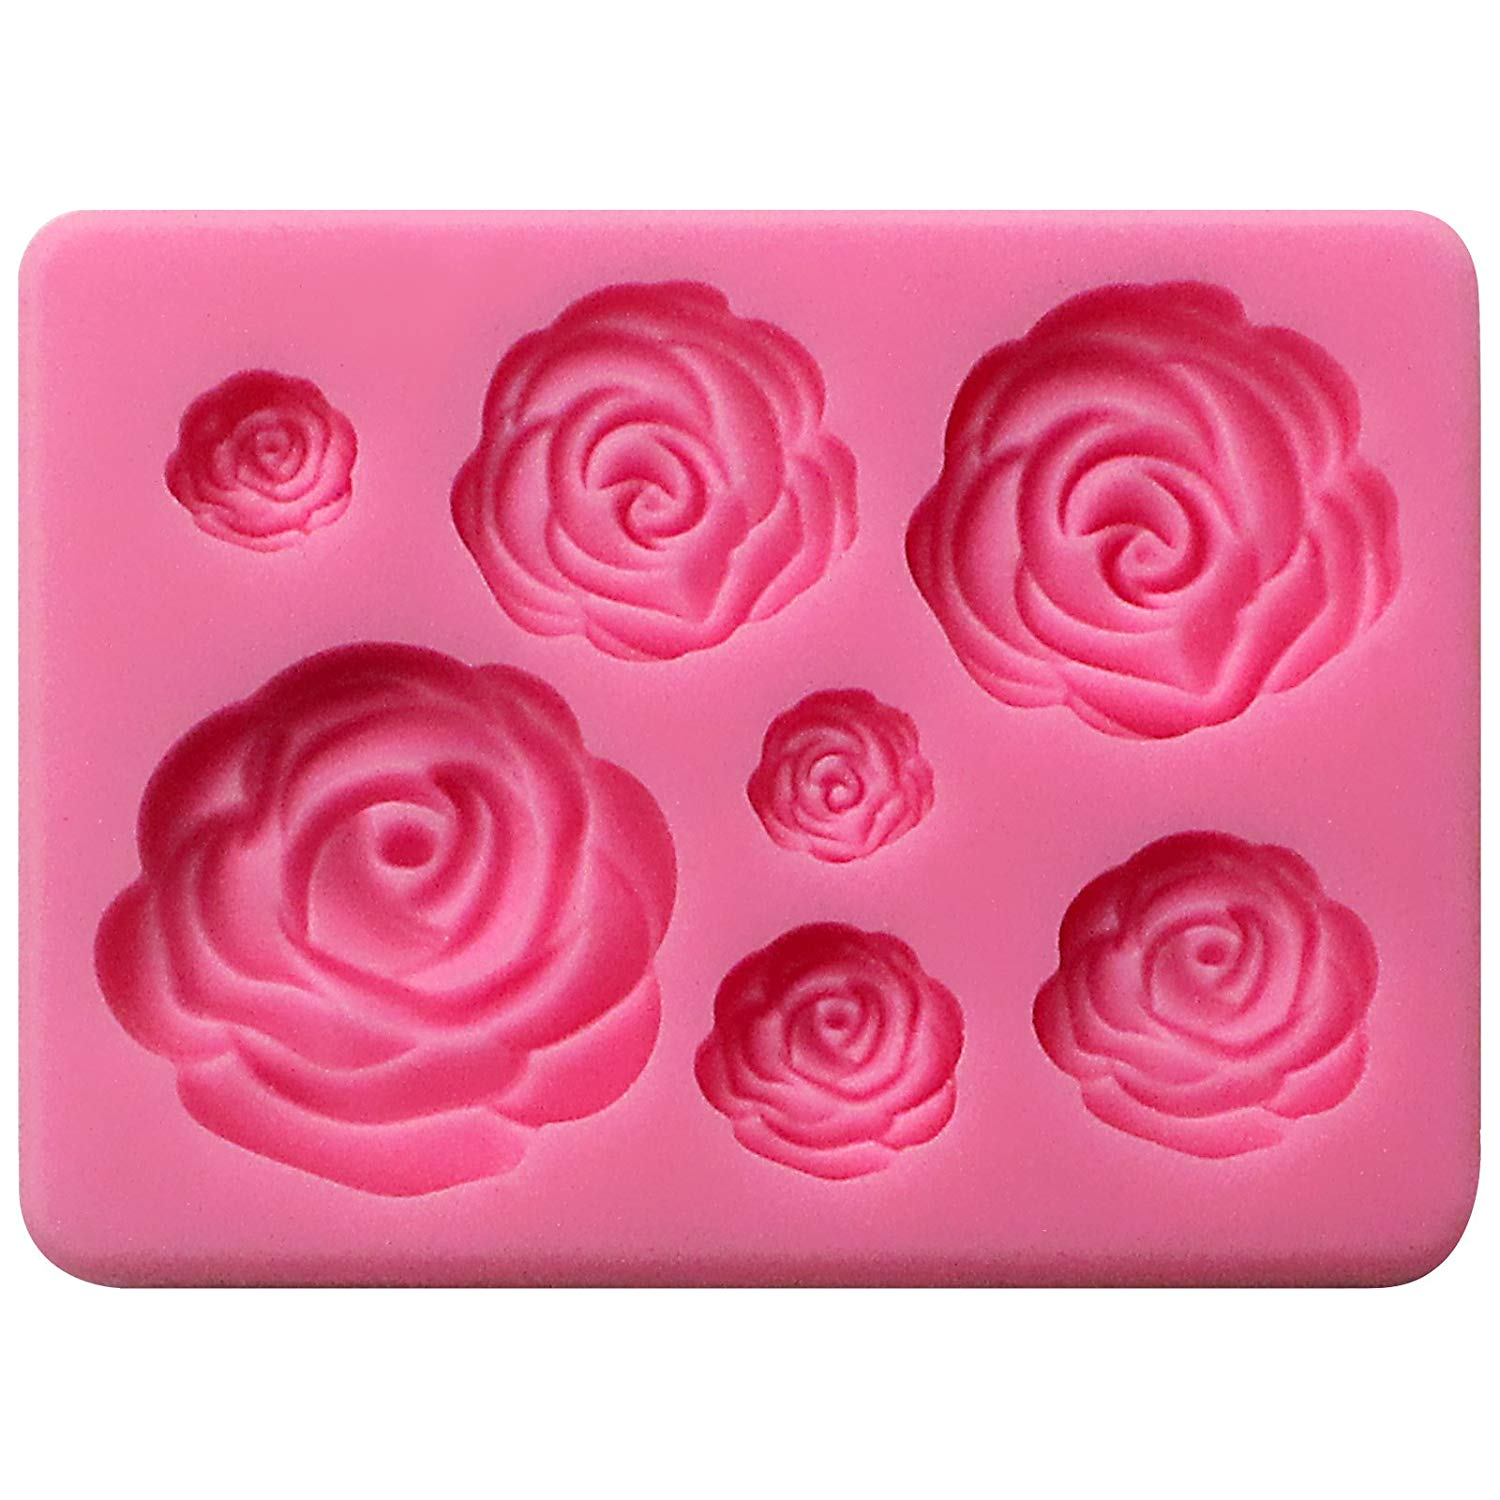 Assorted Blooming Roses Fondant Silicone Mold